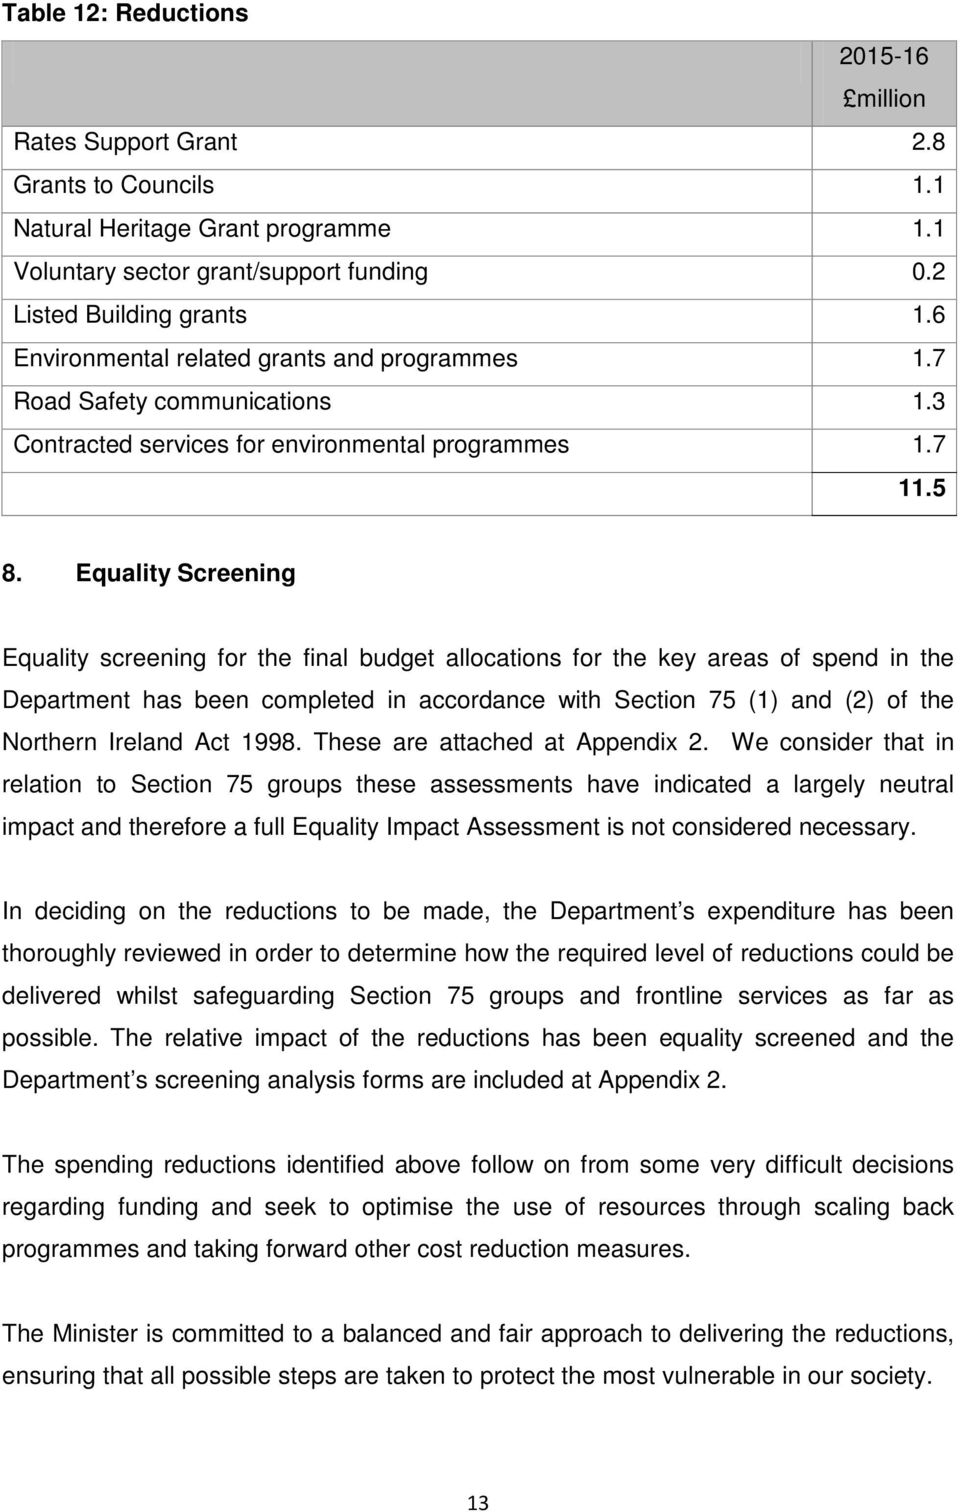 Equality Screening Equality screening for the final budget allocations for the key areas of spend in the Department has been completed in accordance with Section 75 (1) and (2) of the Northern